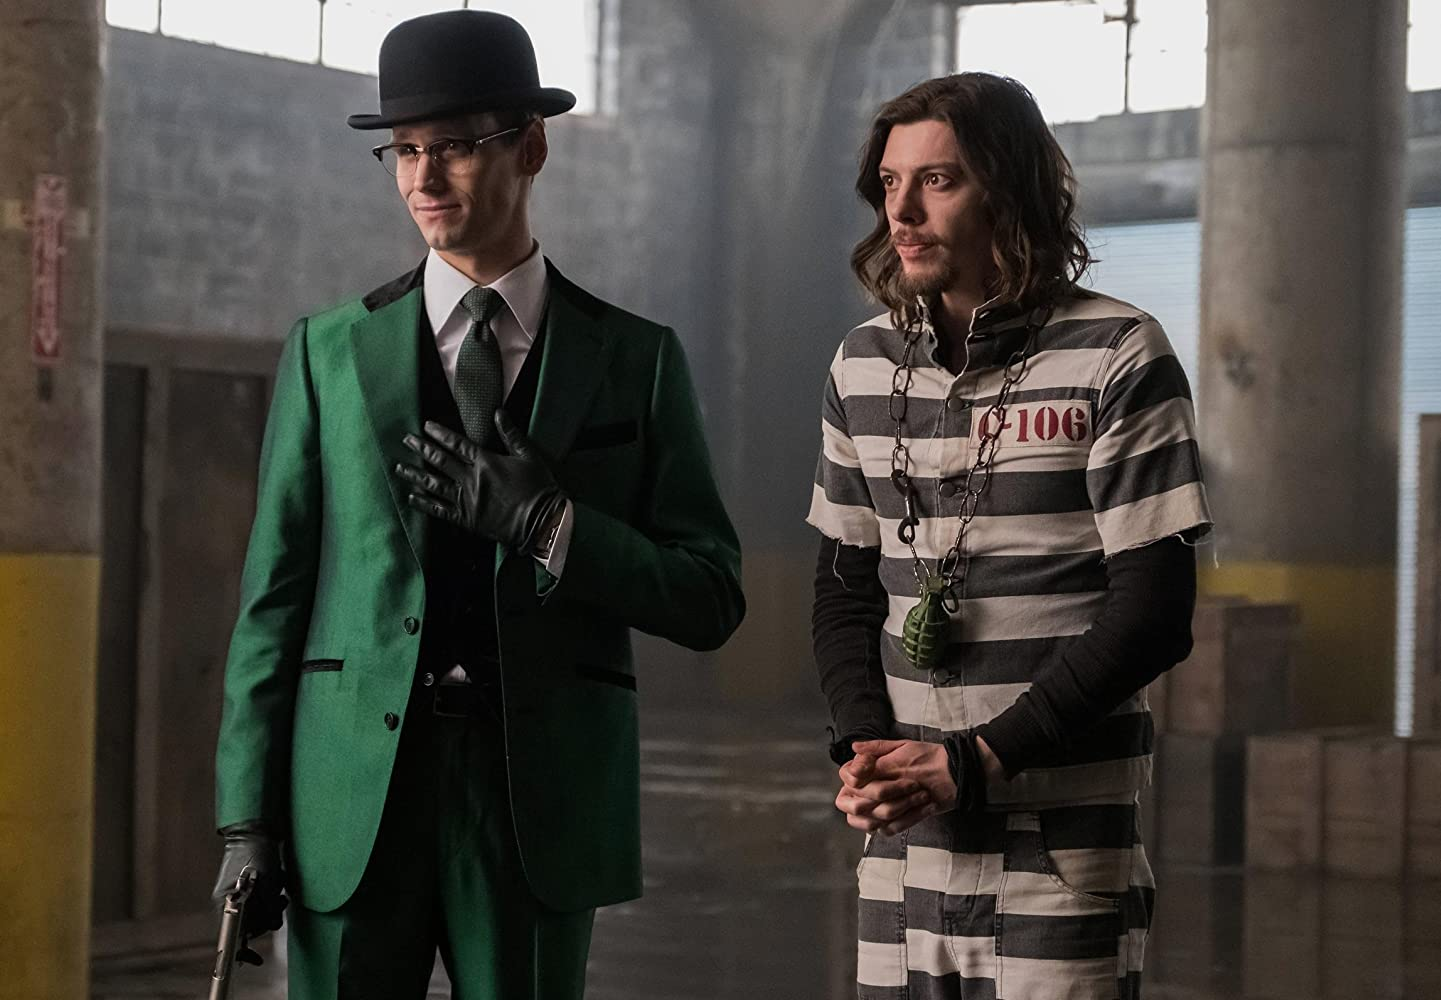 Gotham S03E04 – Mad City: New Day Rising